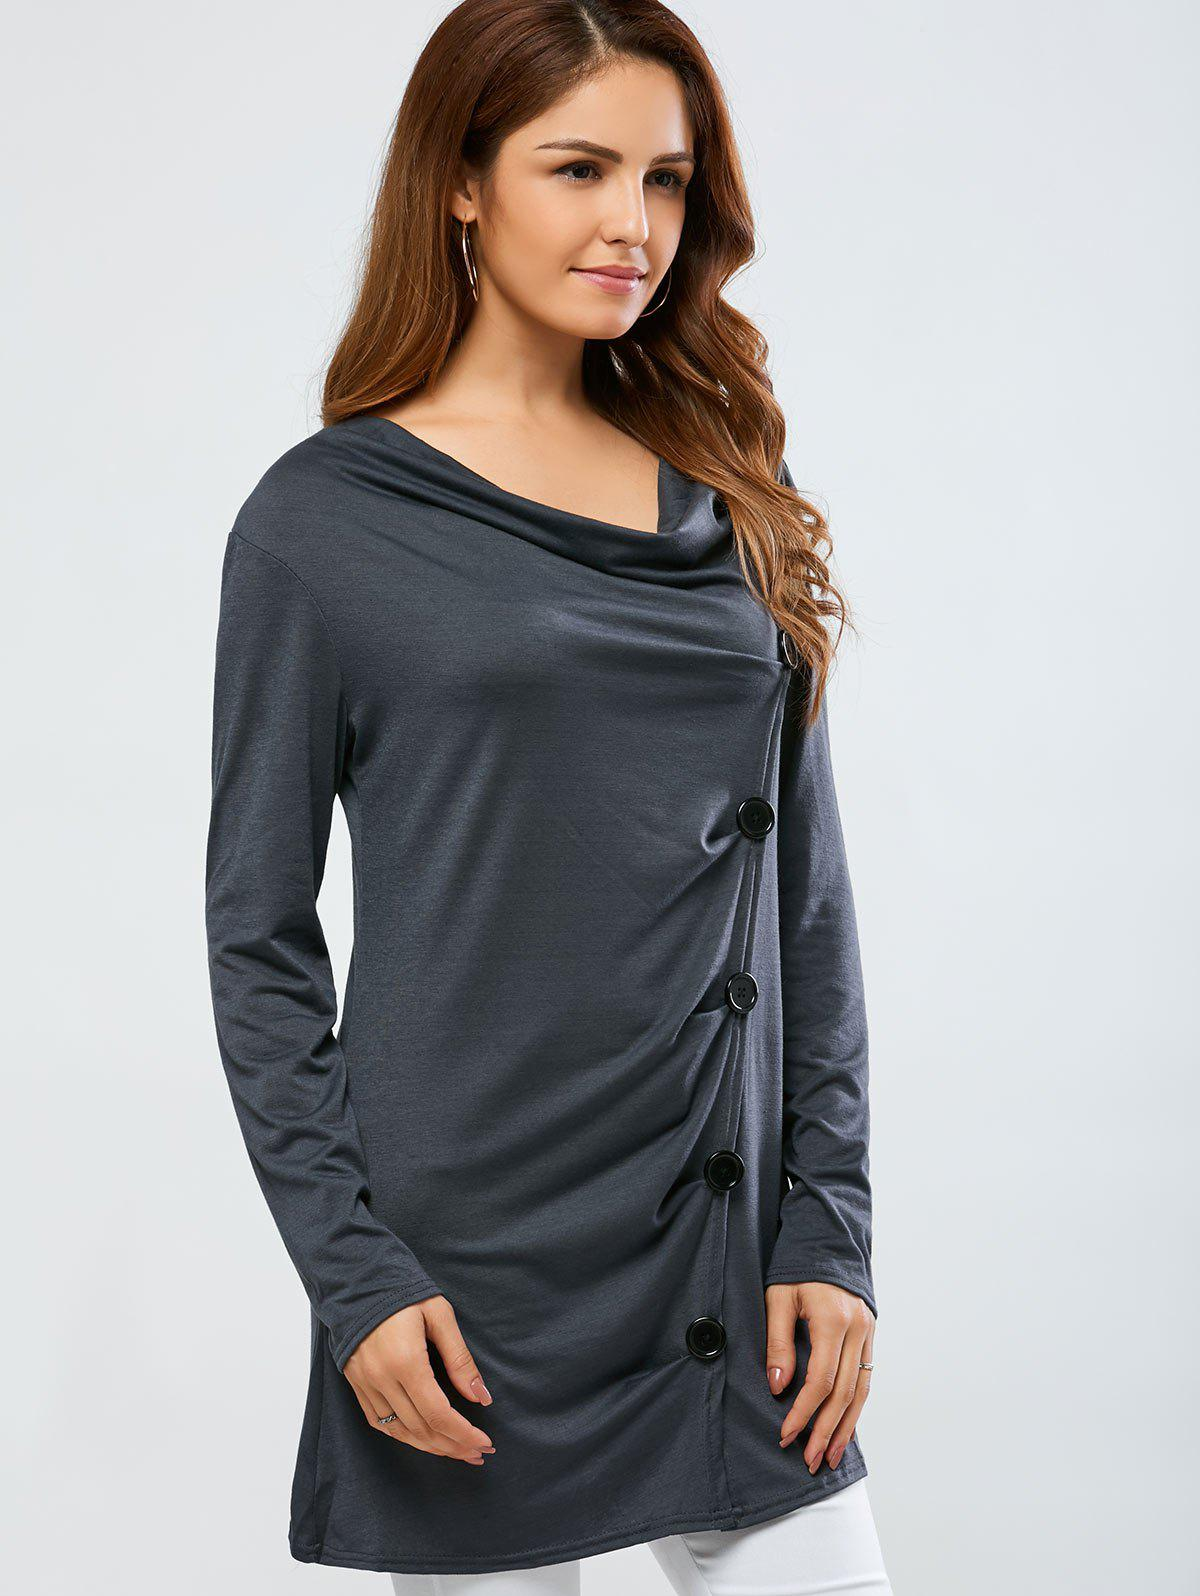 Cowl Neck One Breasted T-Shirt - GRAY M